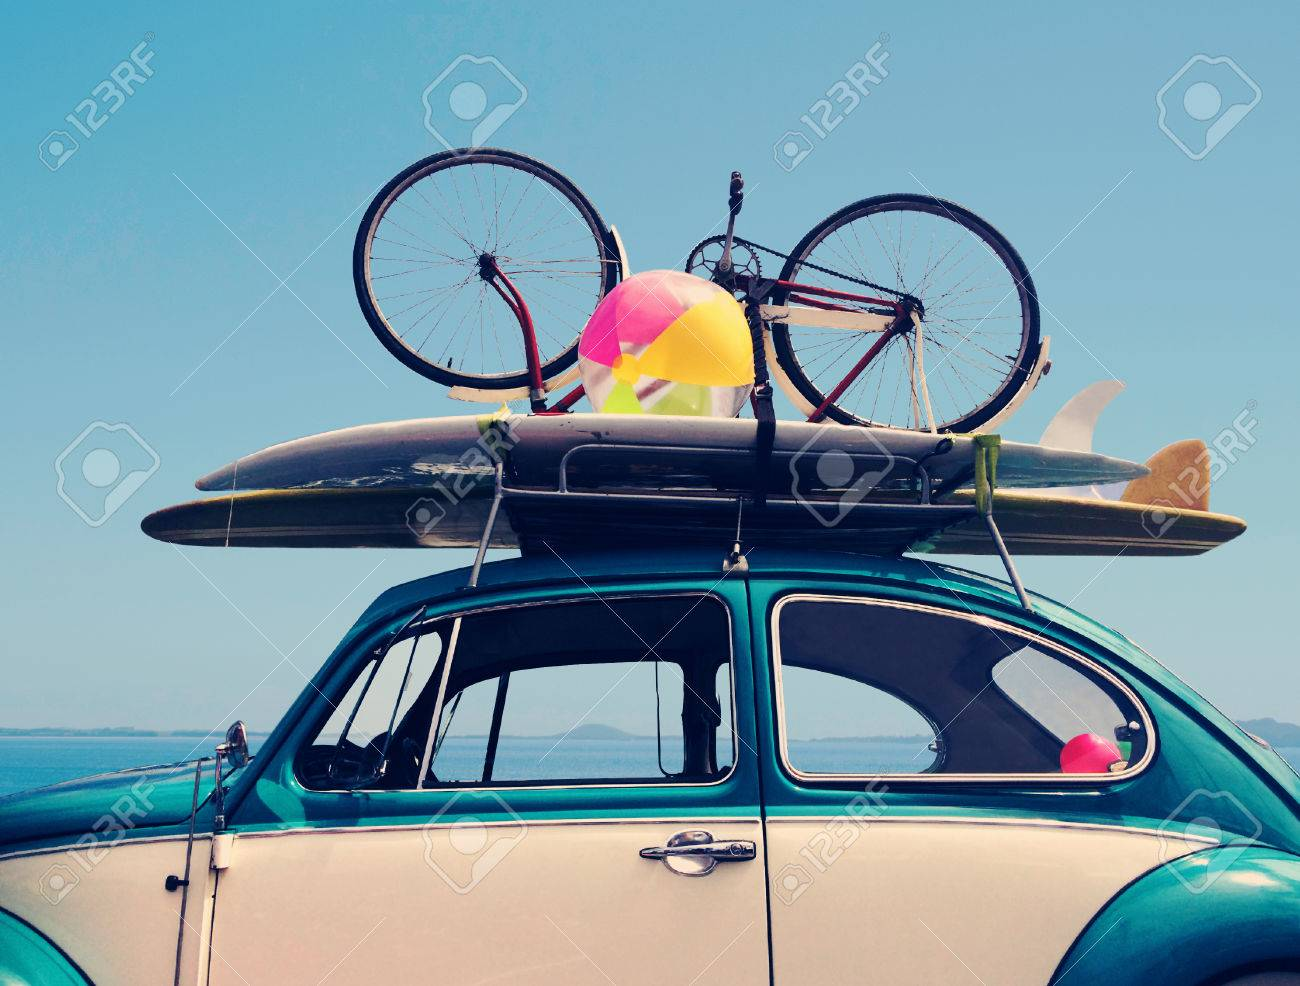 Vintage Summer holiday road trip vacation, Travel concept with copy space - 47253089